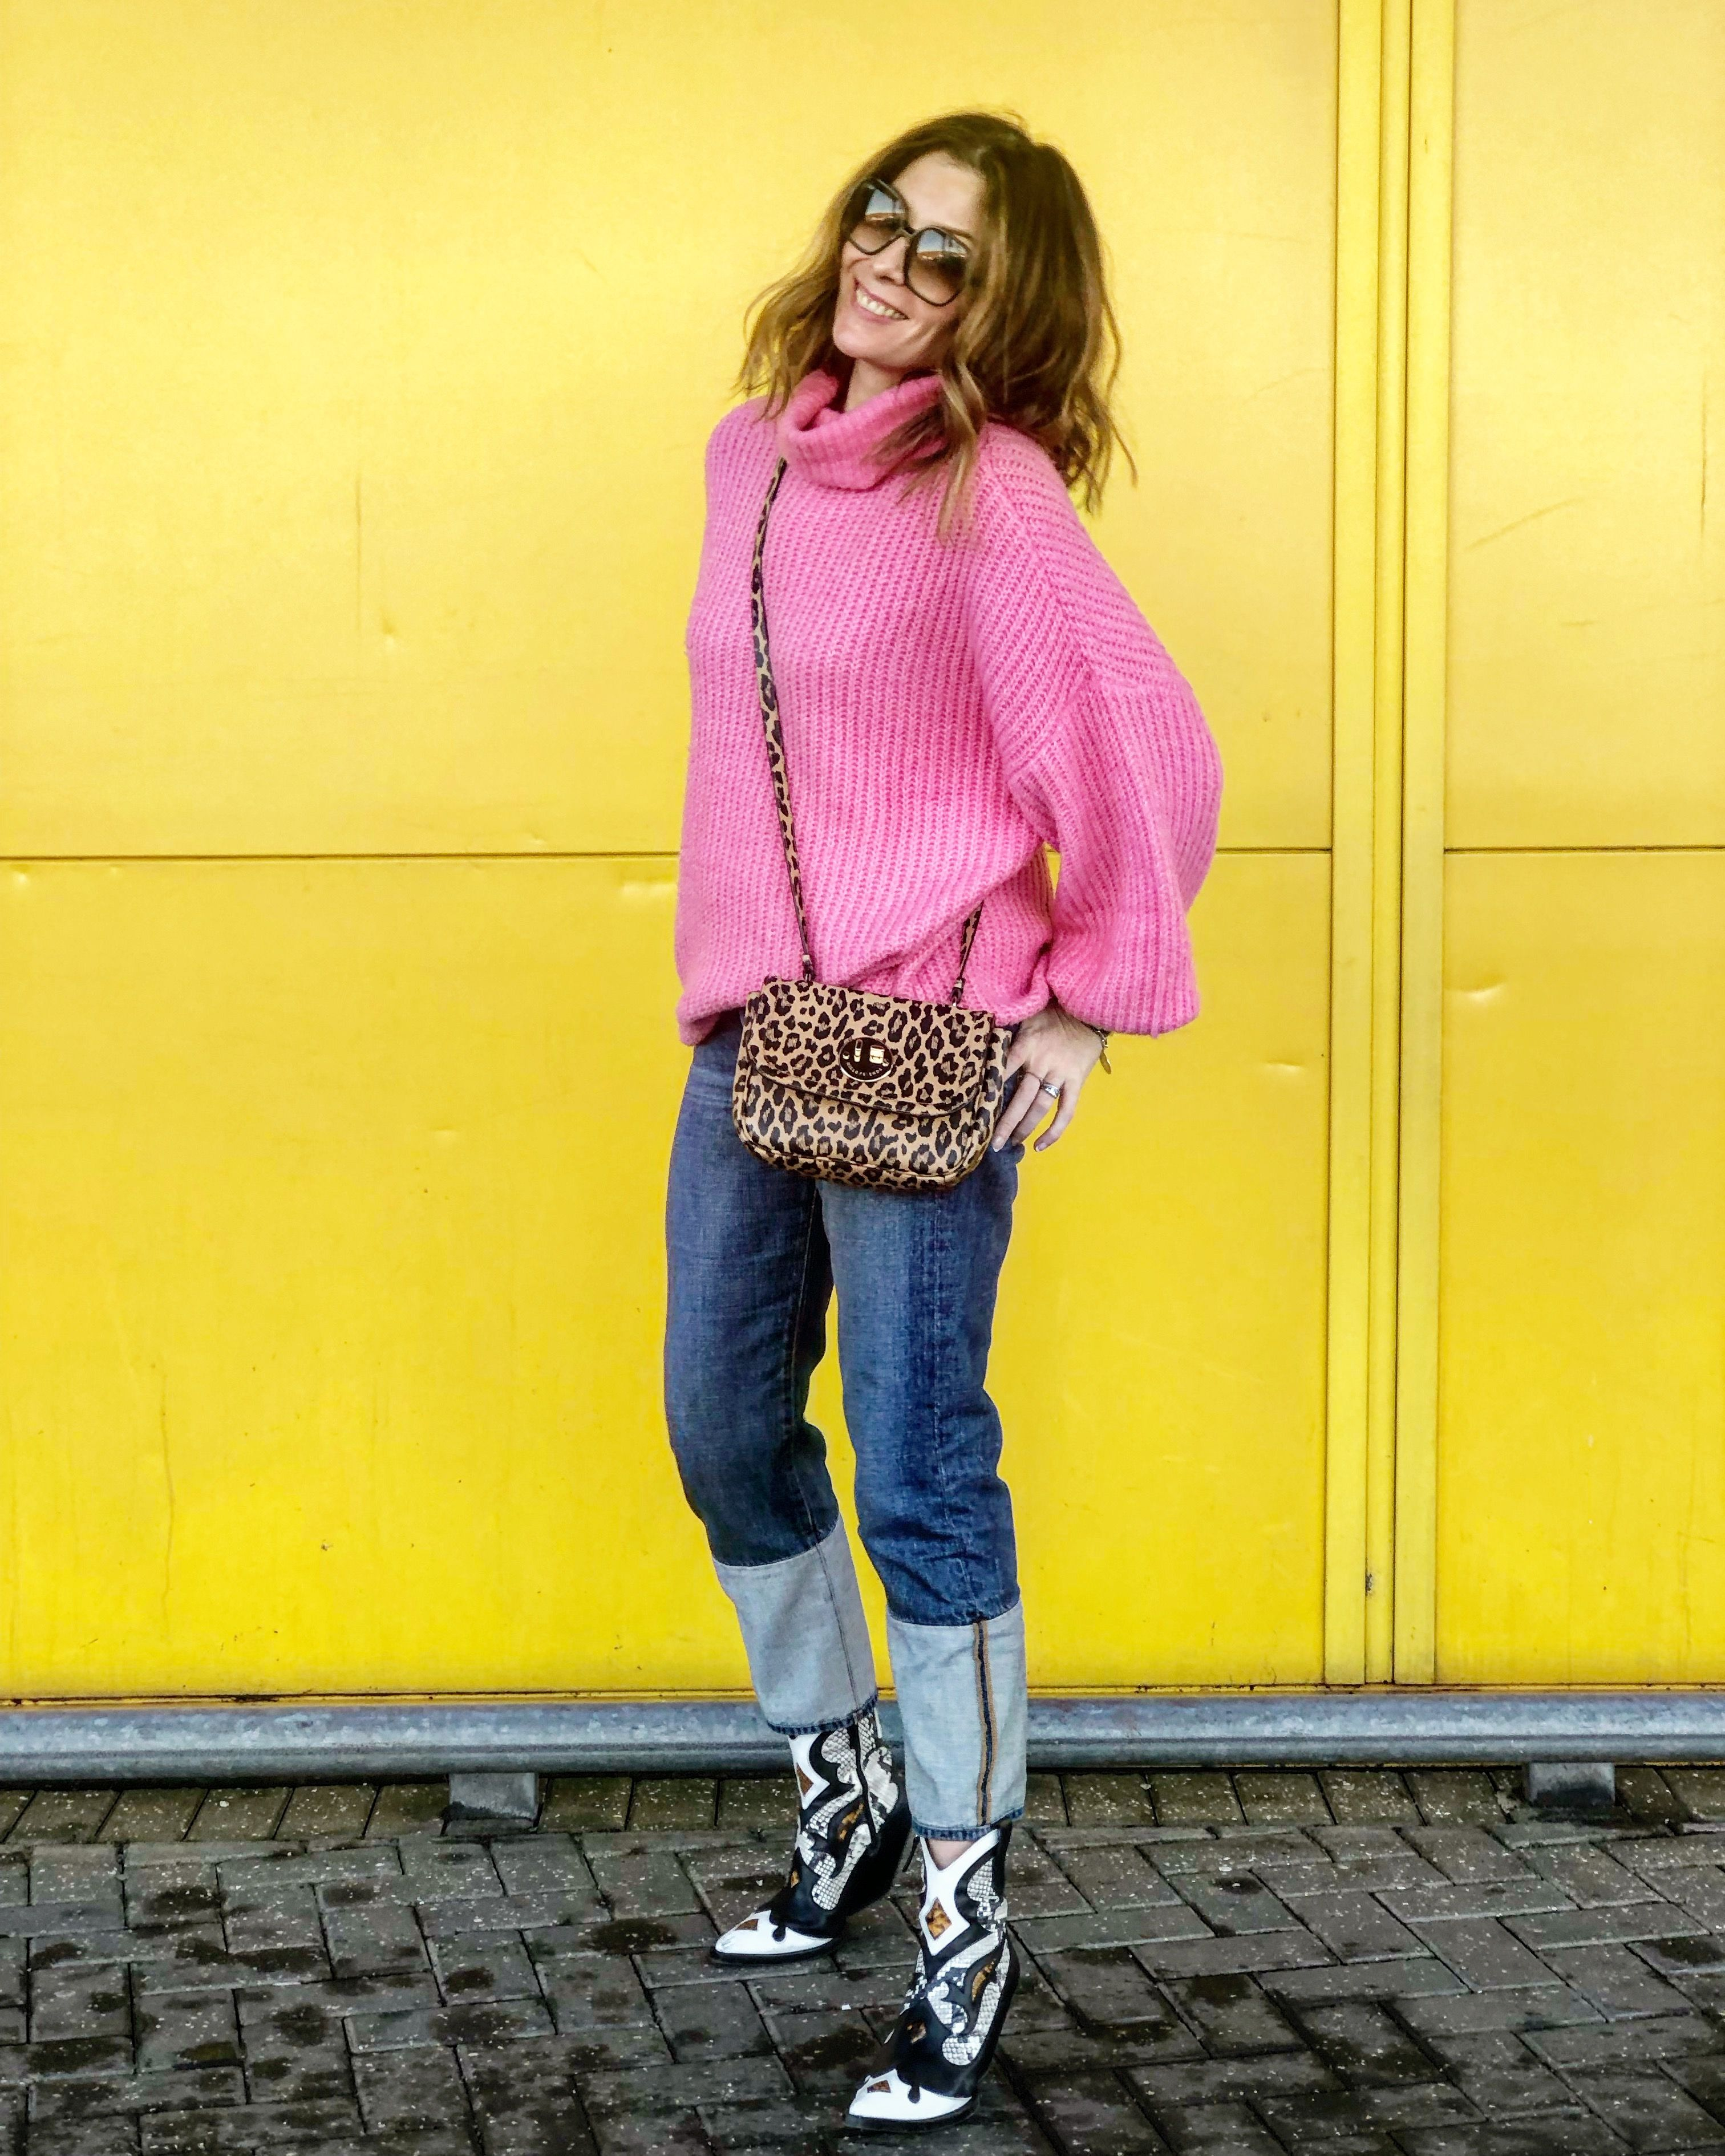 4d841a219 Jumper - Noisy May from Debenhams (sale aw18) Jeans - Frame from Fenwick  (sale aw17) Boots - Zara (aw18) Bag - Hill   Friends (gift ss18)